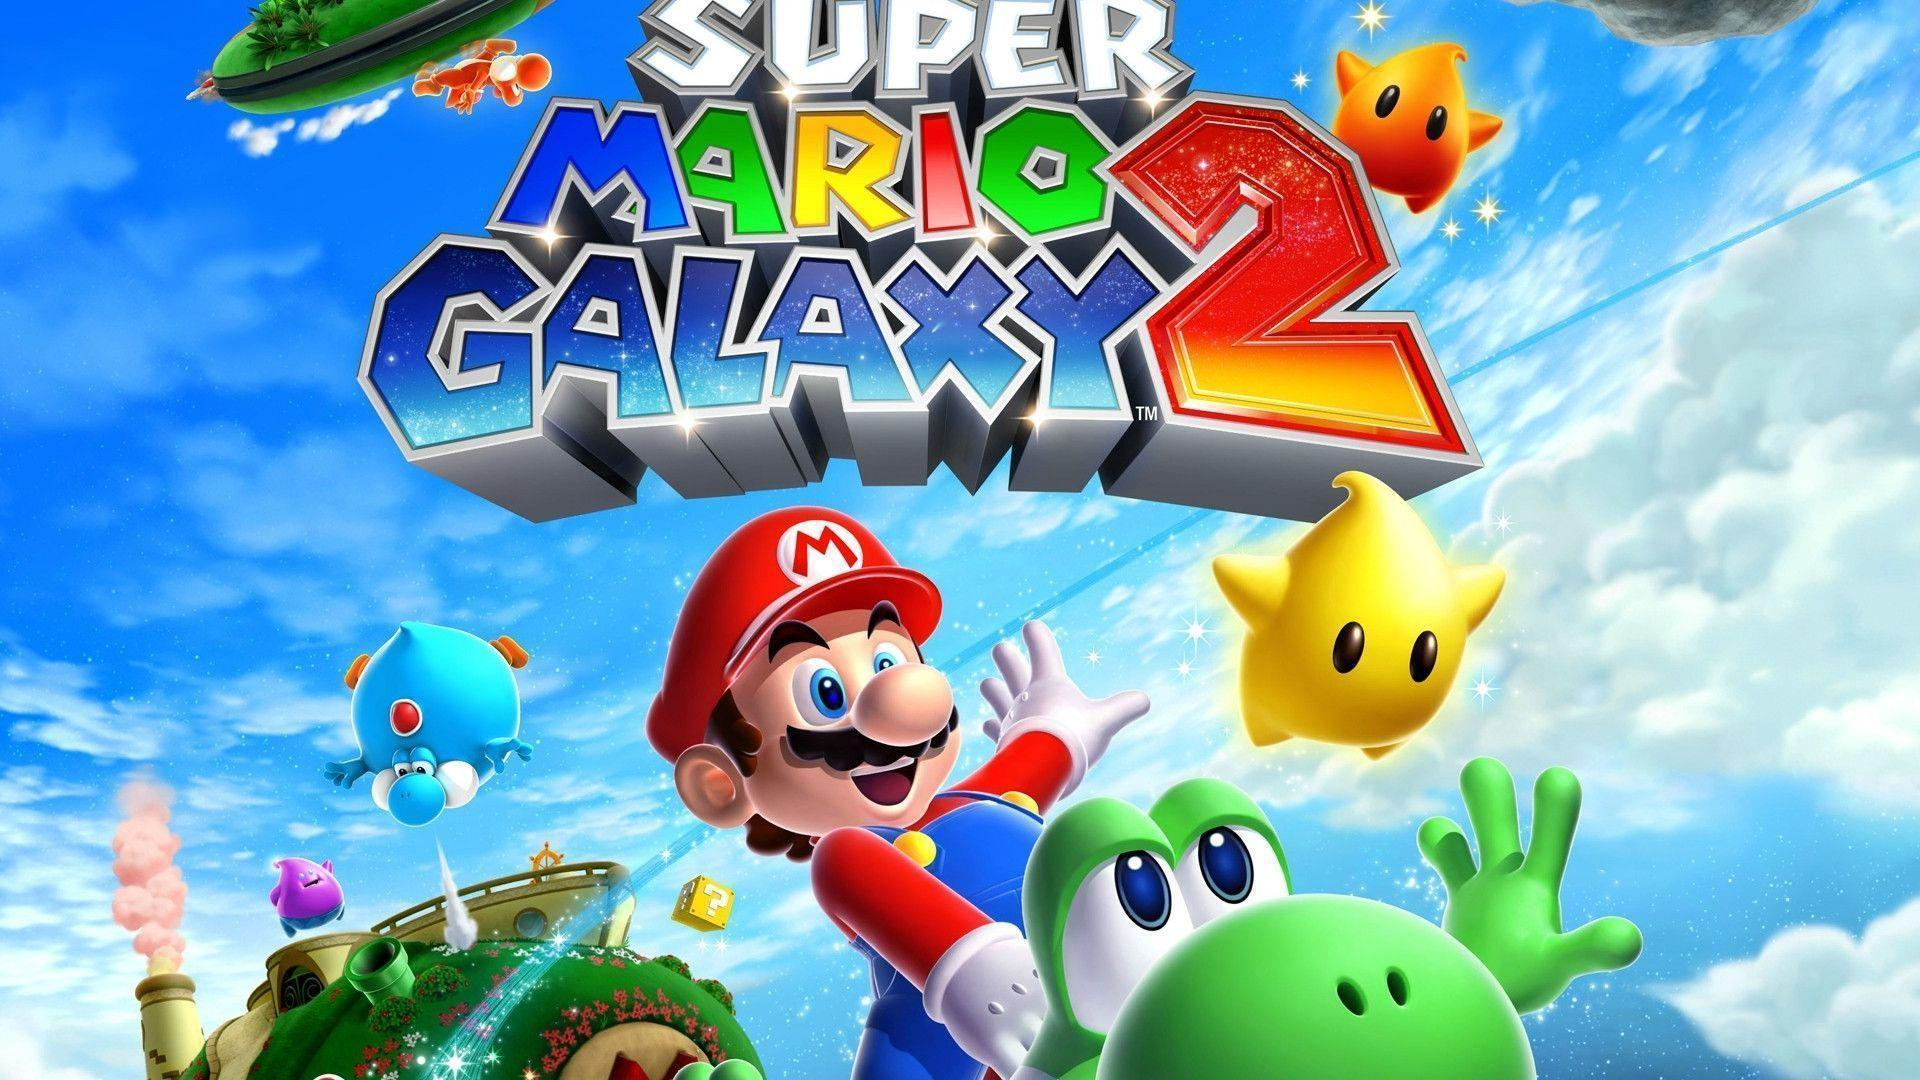 Super Mario Galaxy 2 Wallpapers Hd Wallpaper Cave